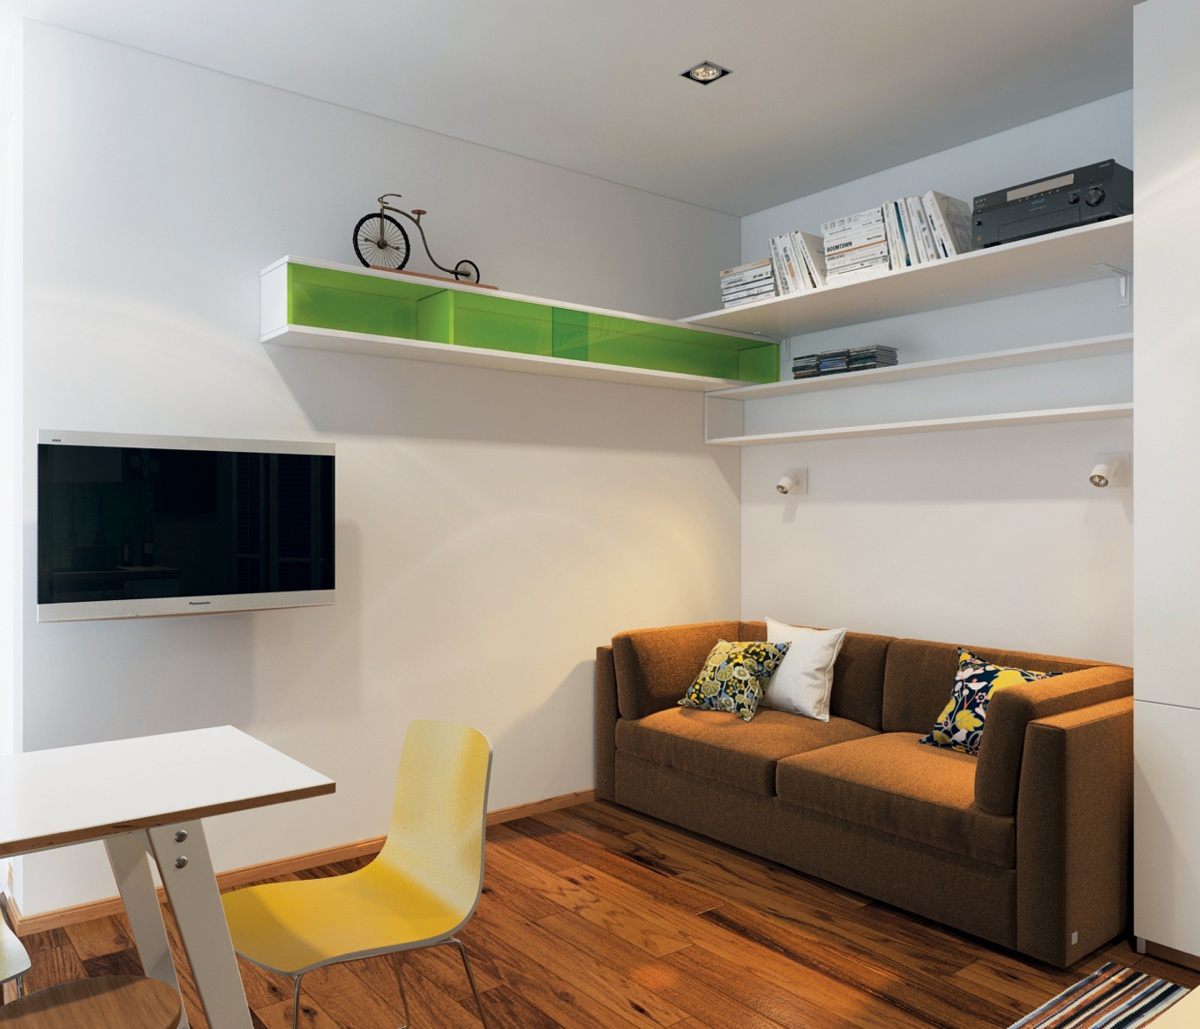 homes under 400 square feet: 5 apartments that squeeze utility out